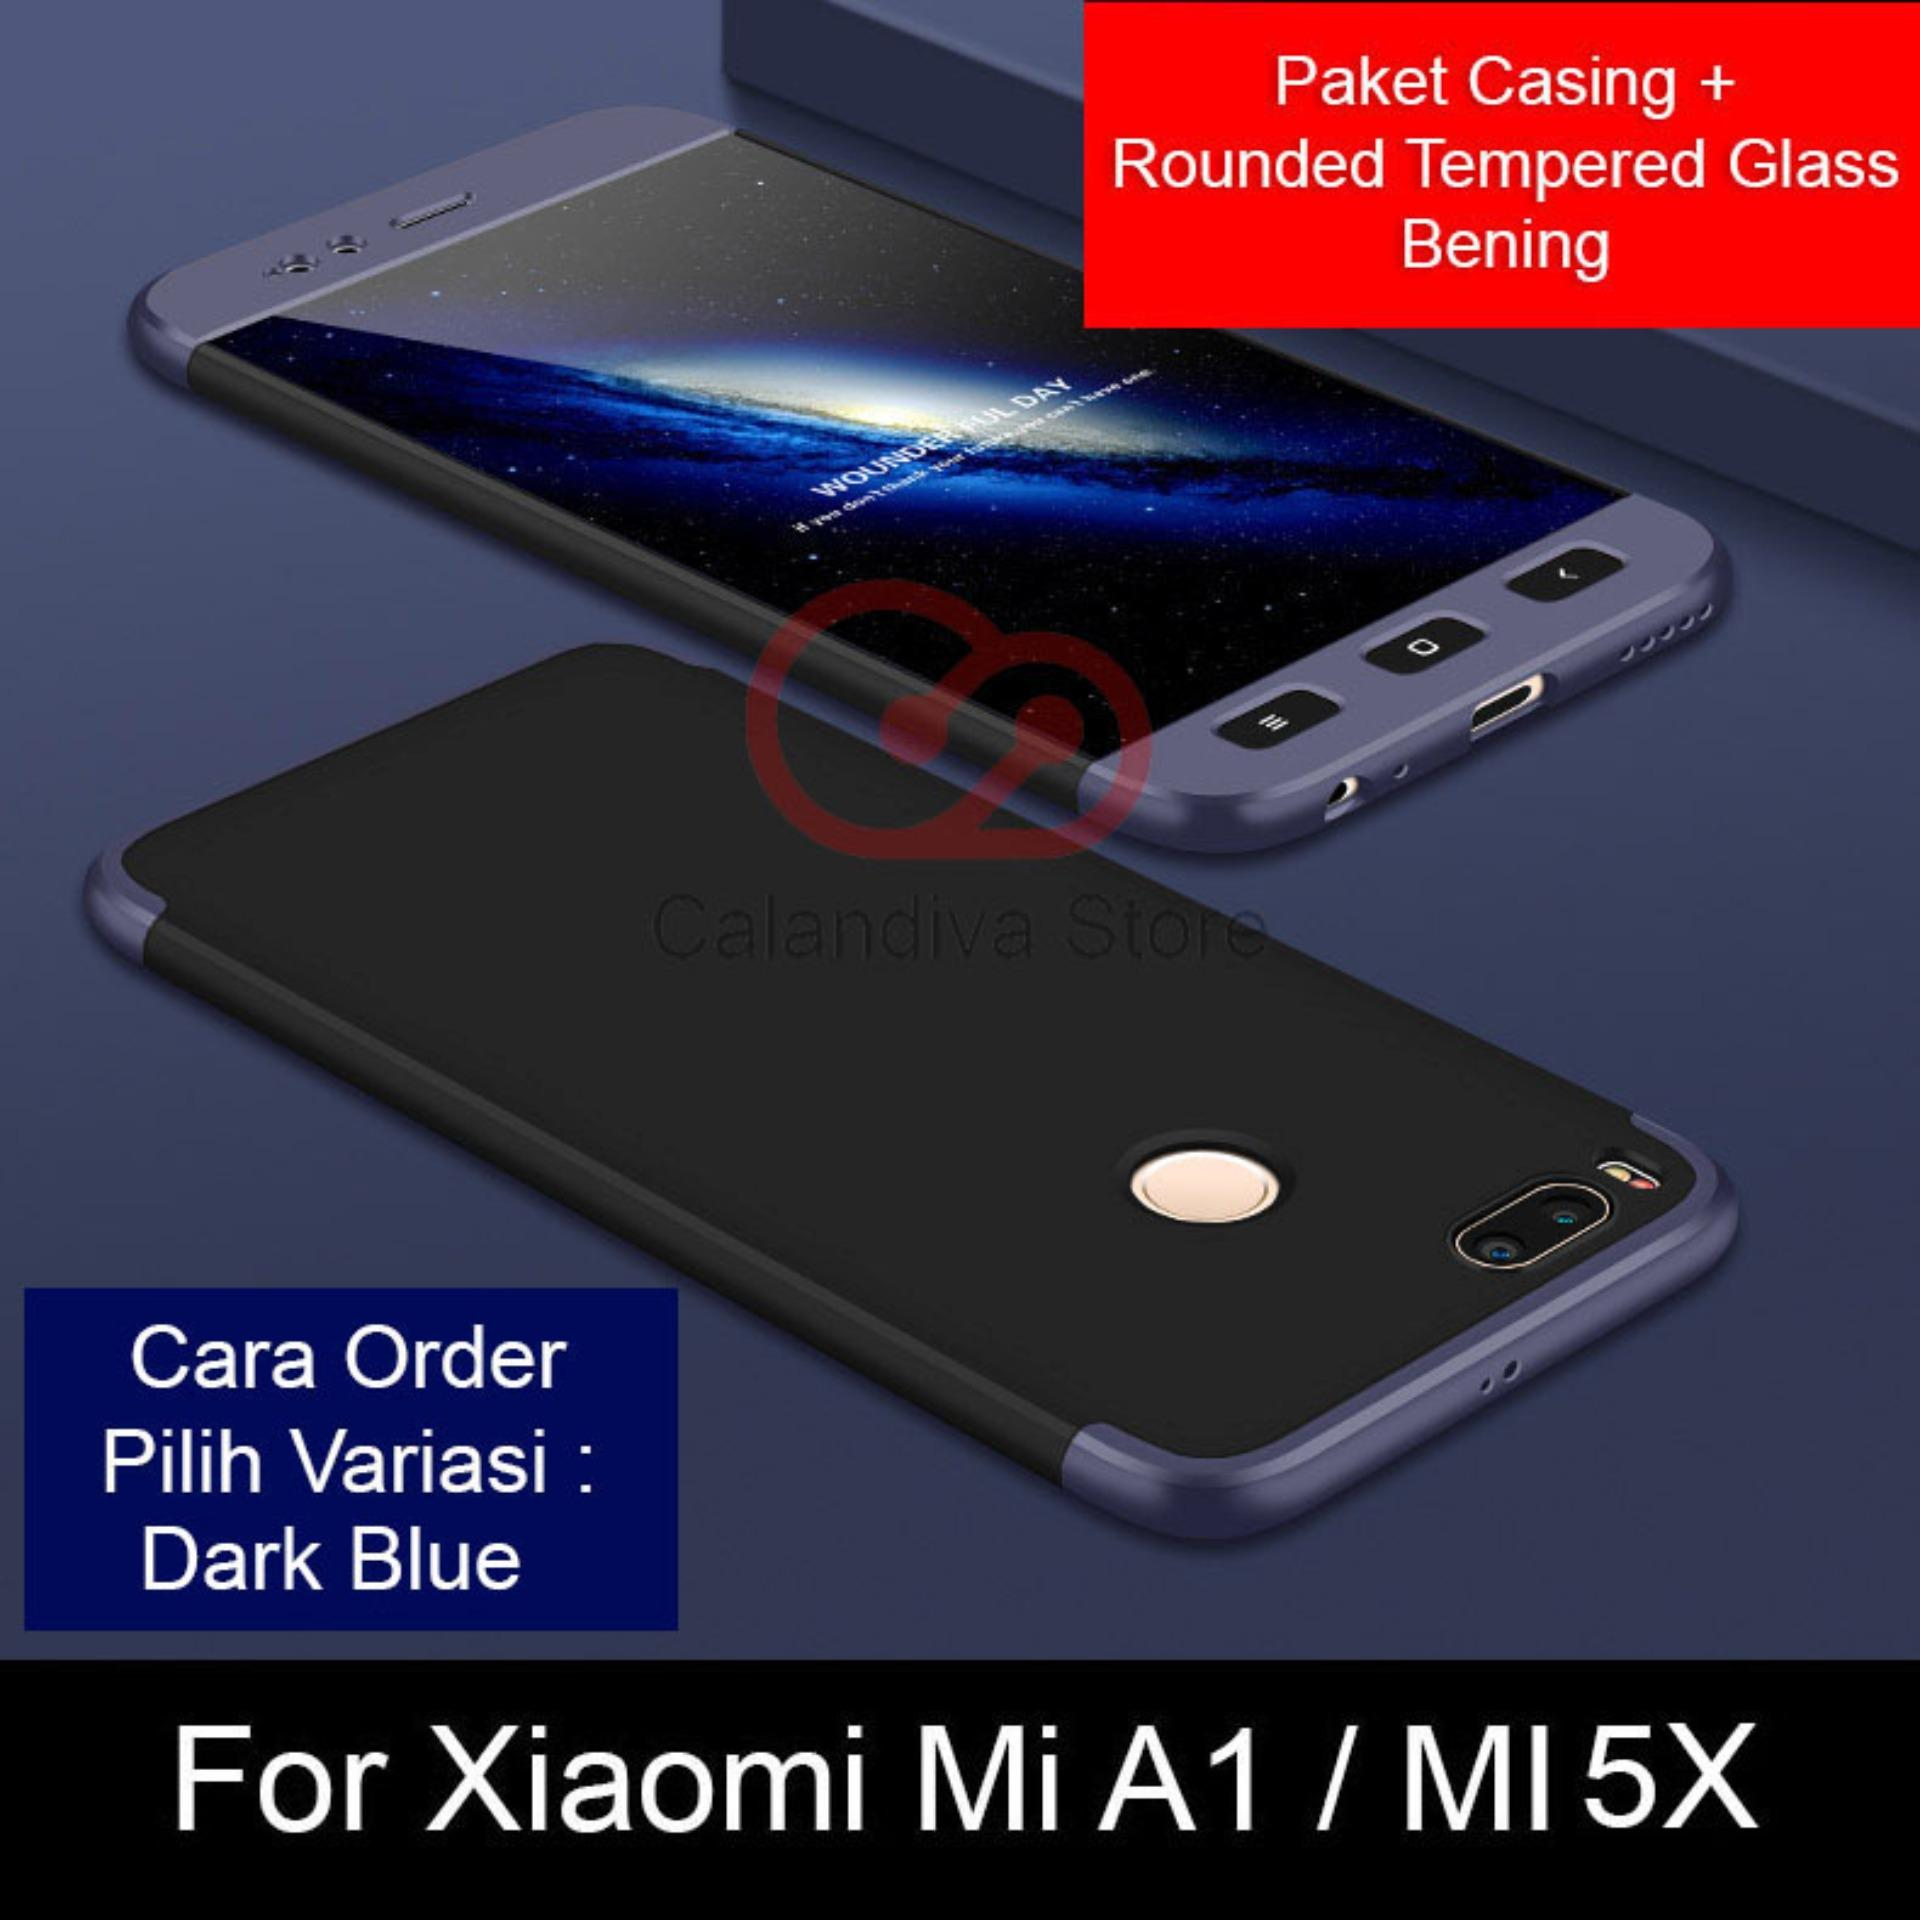 Review Calandiva Premium Front Back 360 Degree Full Protection Case Quality Grade A For Xiaomi Mi A1 Mi 5X 5 5 Inch Sama Ukuran Rounded Tempered Glass 2 5D Bening Di Jawa Barat